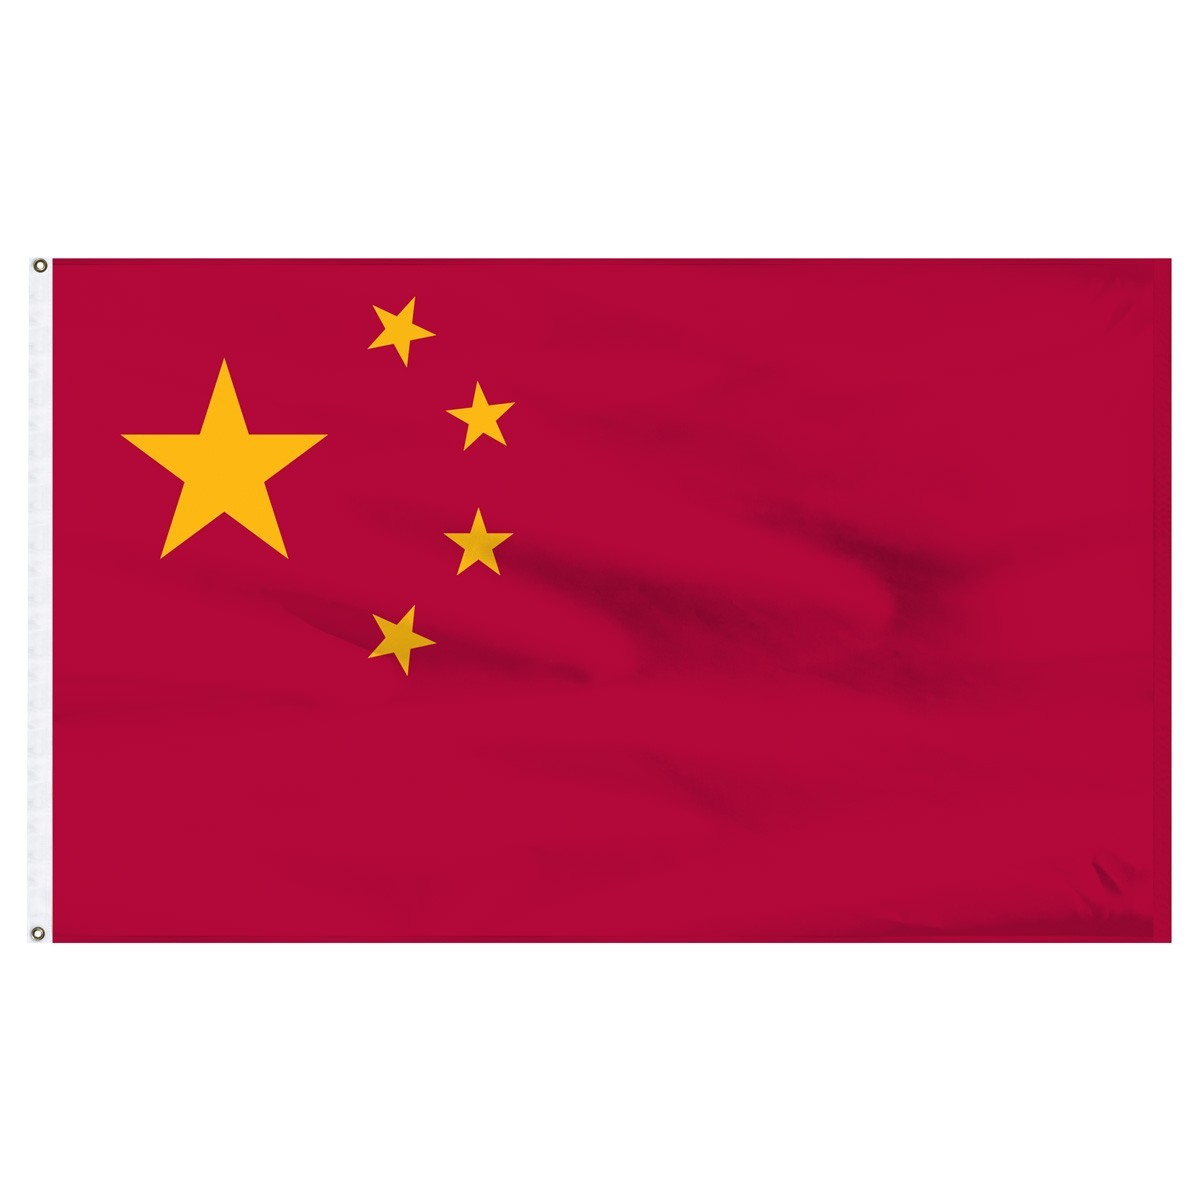 China 3' x 5' Outdoor Nylon Flag